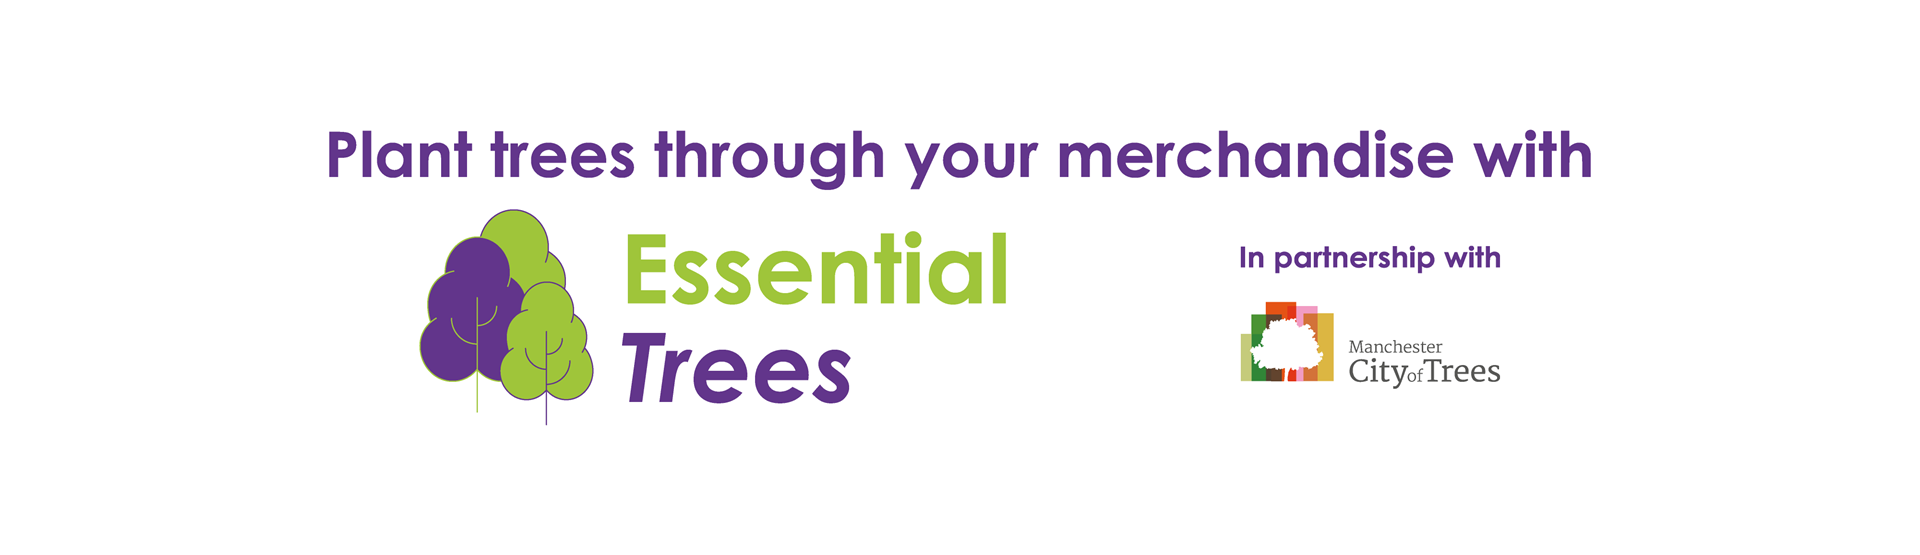 Essential Trees - Plant trees through your merchandise!